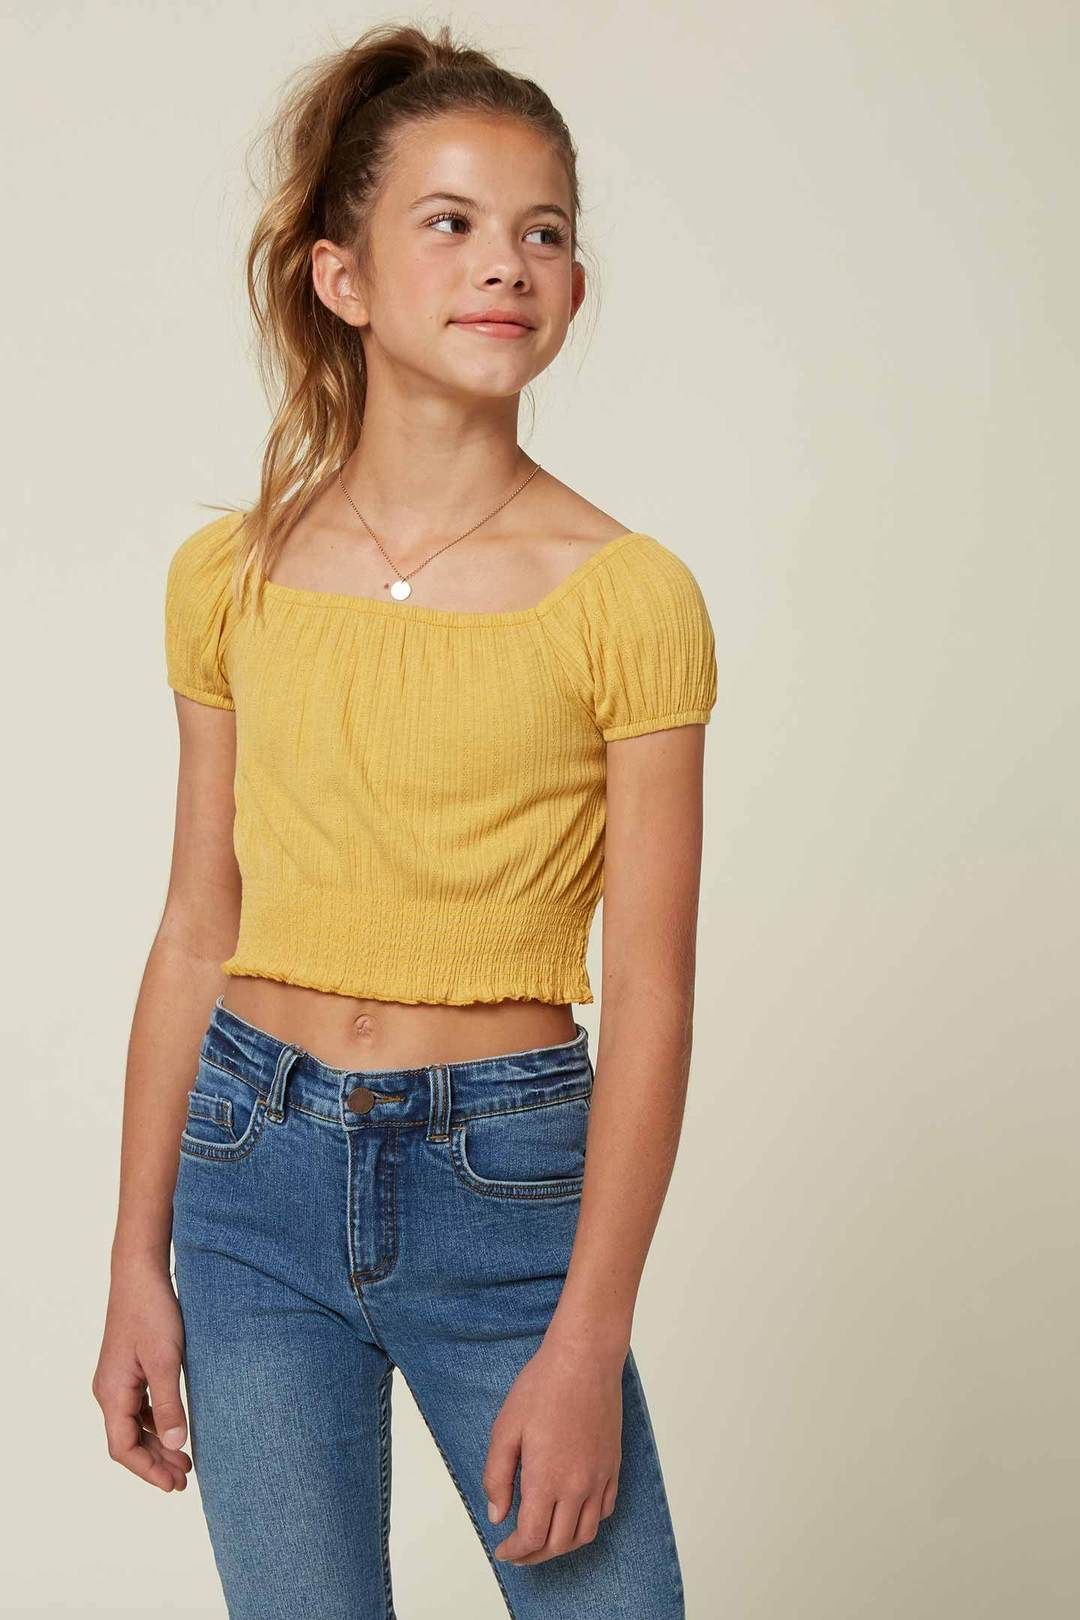 GIRLS SALLIE TOP in 2020 | Girls fashion tween, Girls knit ...